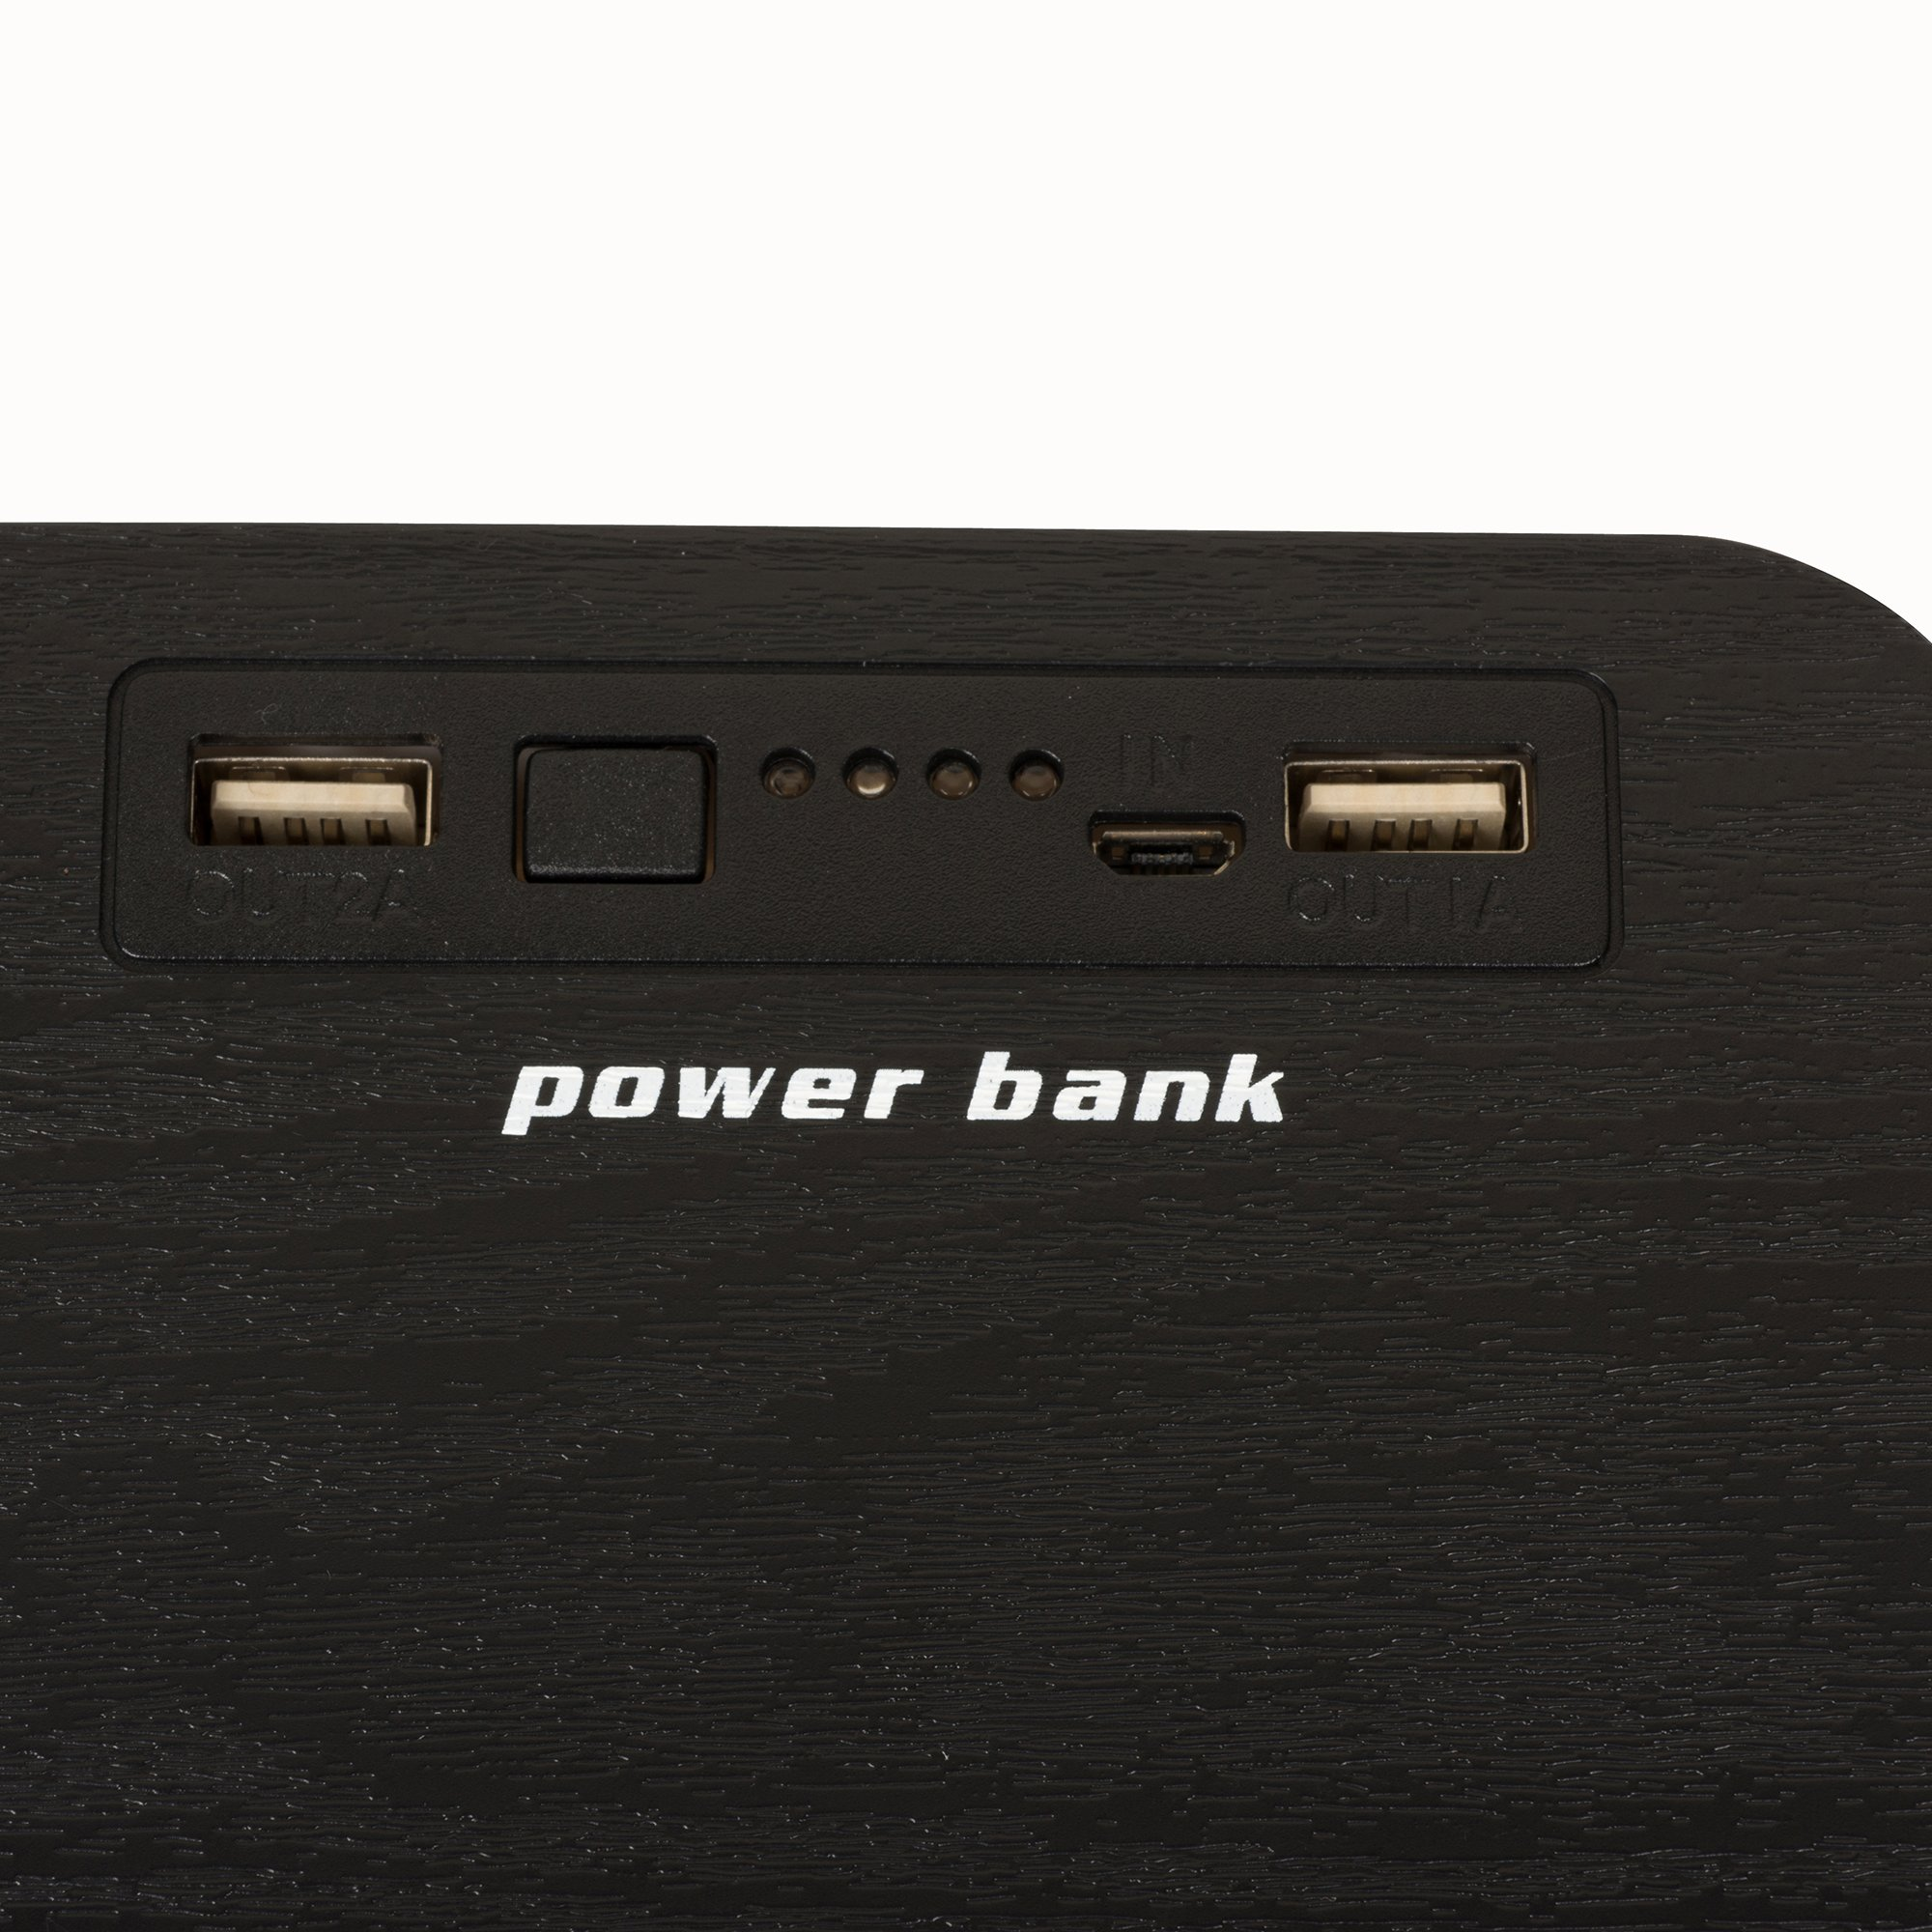 It's Useful Laptop Computer Notebook iPad Stand with Power Bank - Portable for Travel and Adjustable by It's Useful (Image #2)